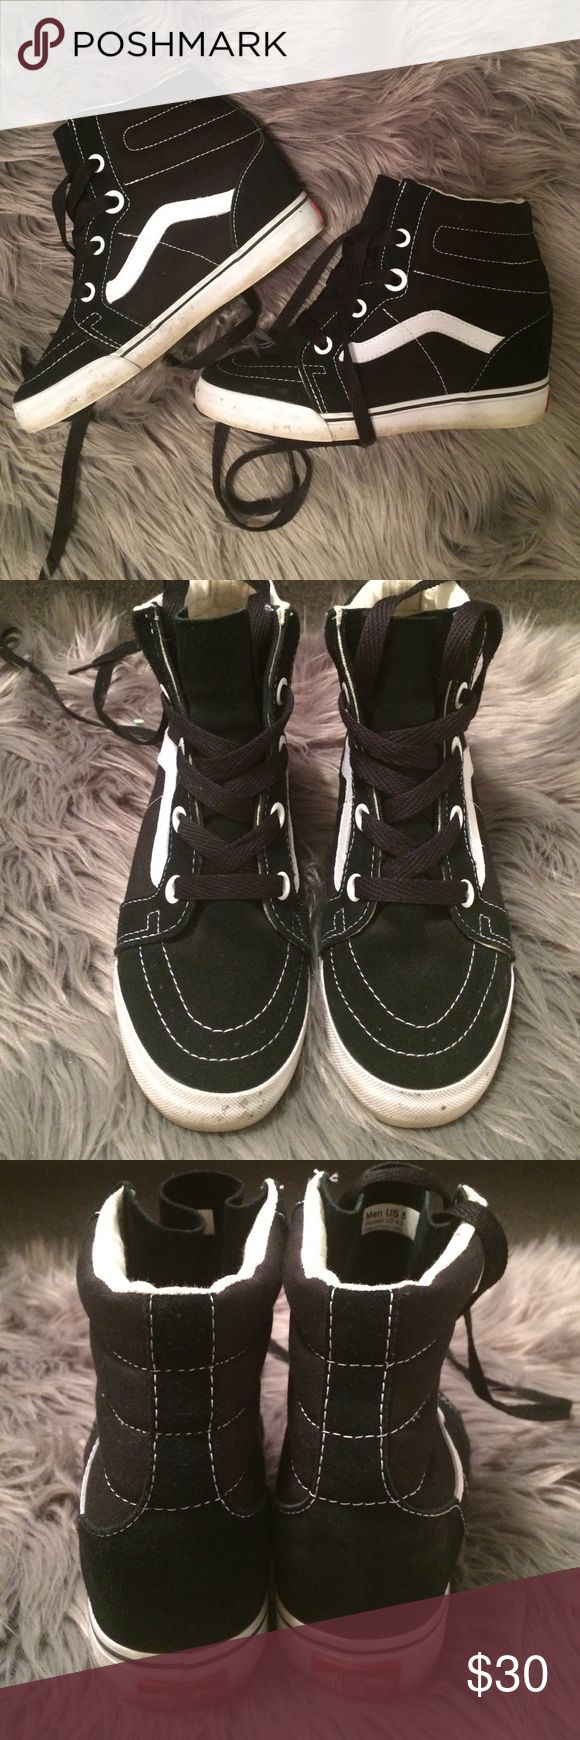 """Vans Sk-8 hi Sneaker Wedges Vans sneaker with 3"""" wedge heel. Very comfortable. Sole is slightly dirty which could be cleaned but no other noticeable wear. Comes with white shoe laces. Vans Shoes Sneakers"""